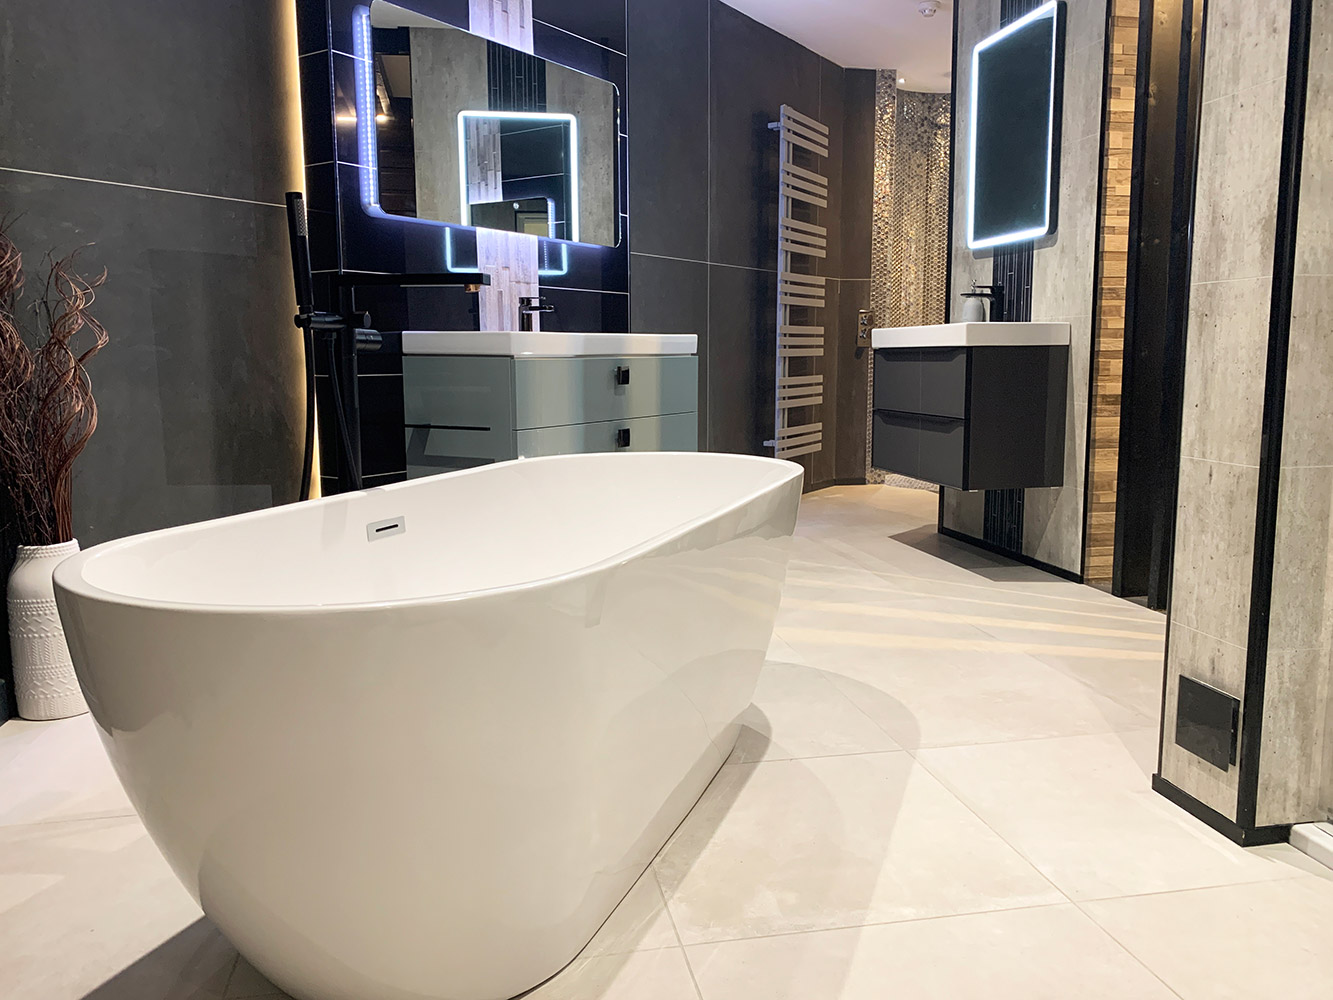 Bathroom Showroom Aberdeen: Bathroom Gallery 7, Photo 6